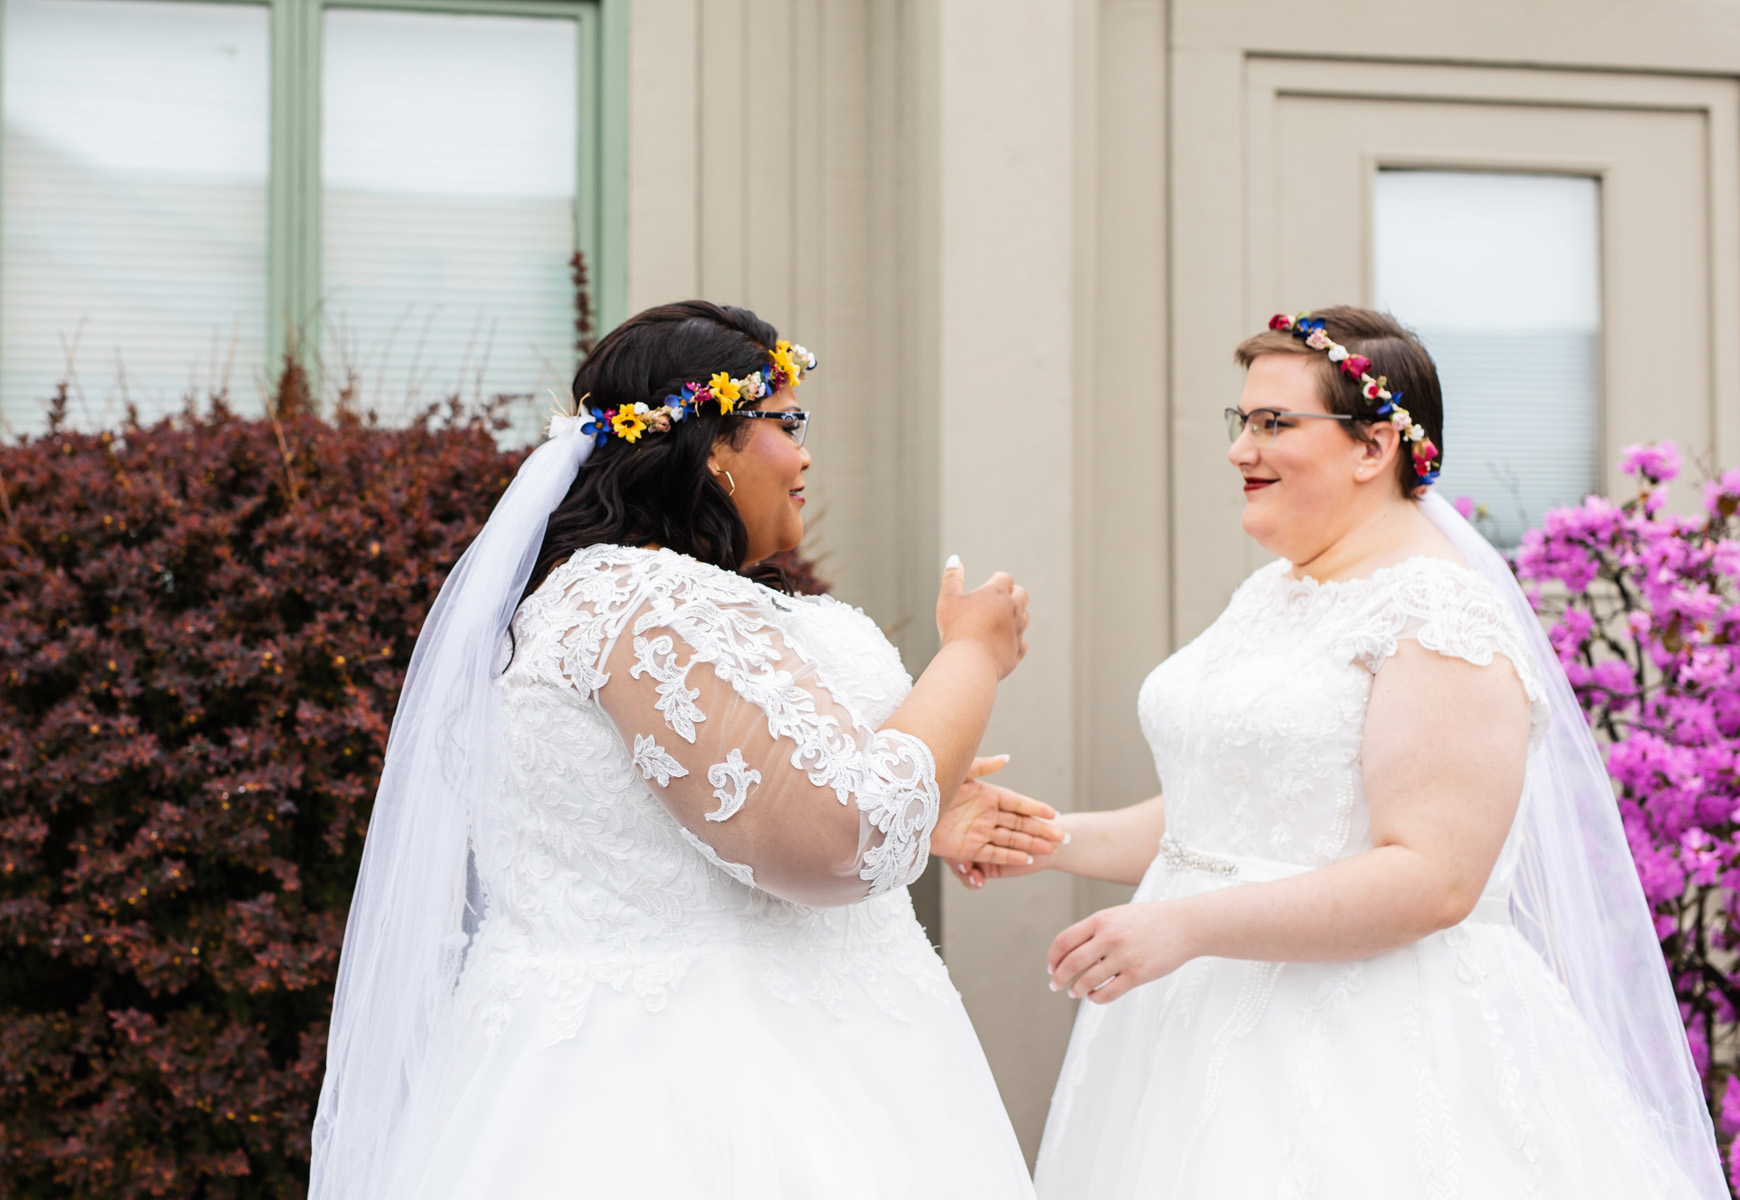 2019 Northampton Pride Parade Wedding by Monika Normand Photography